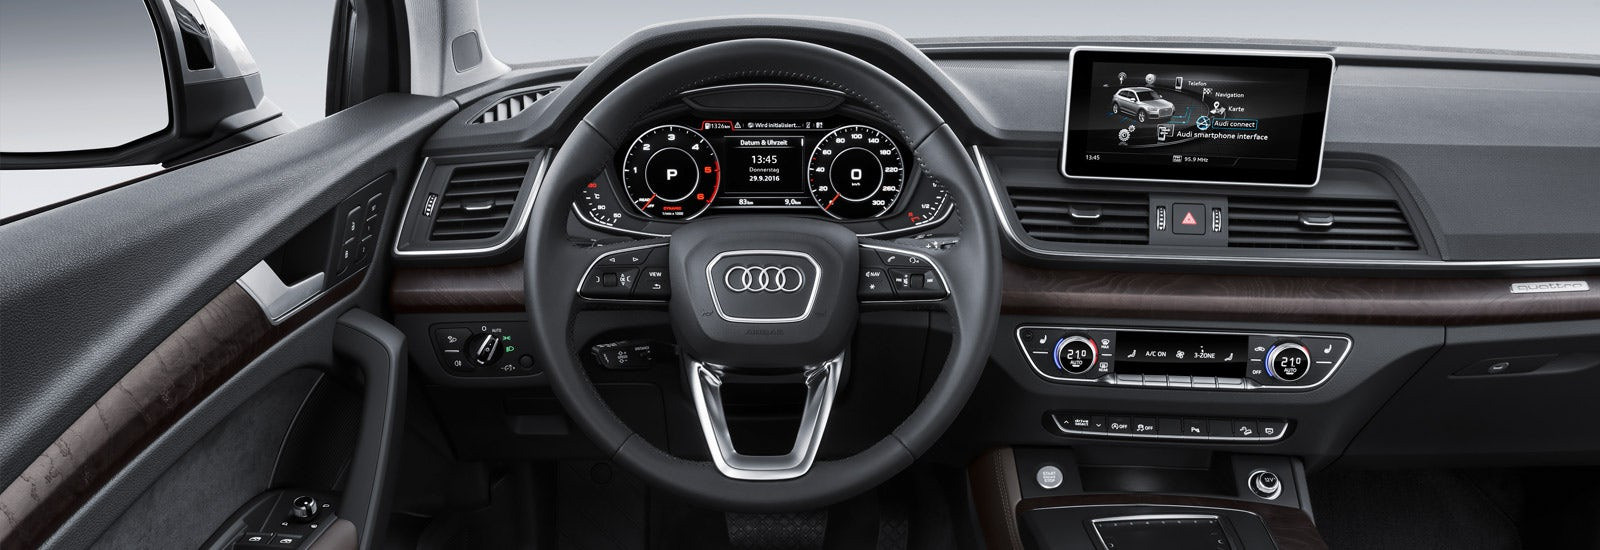 cars review concept specs price audi q3 2018 review specs price. Black Bedroom Furniture Sets. Home Design Ideas